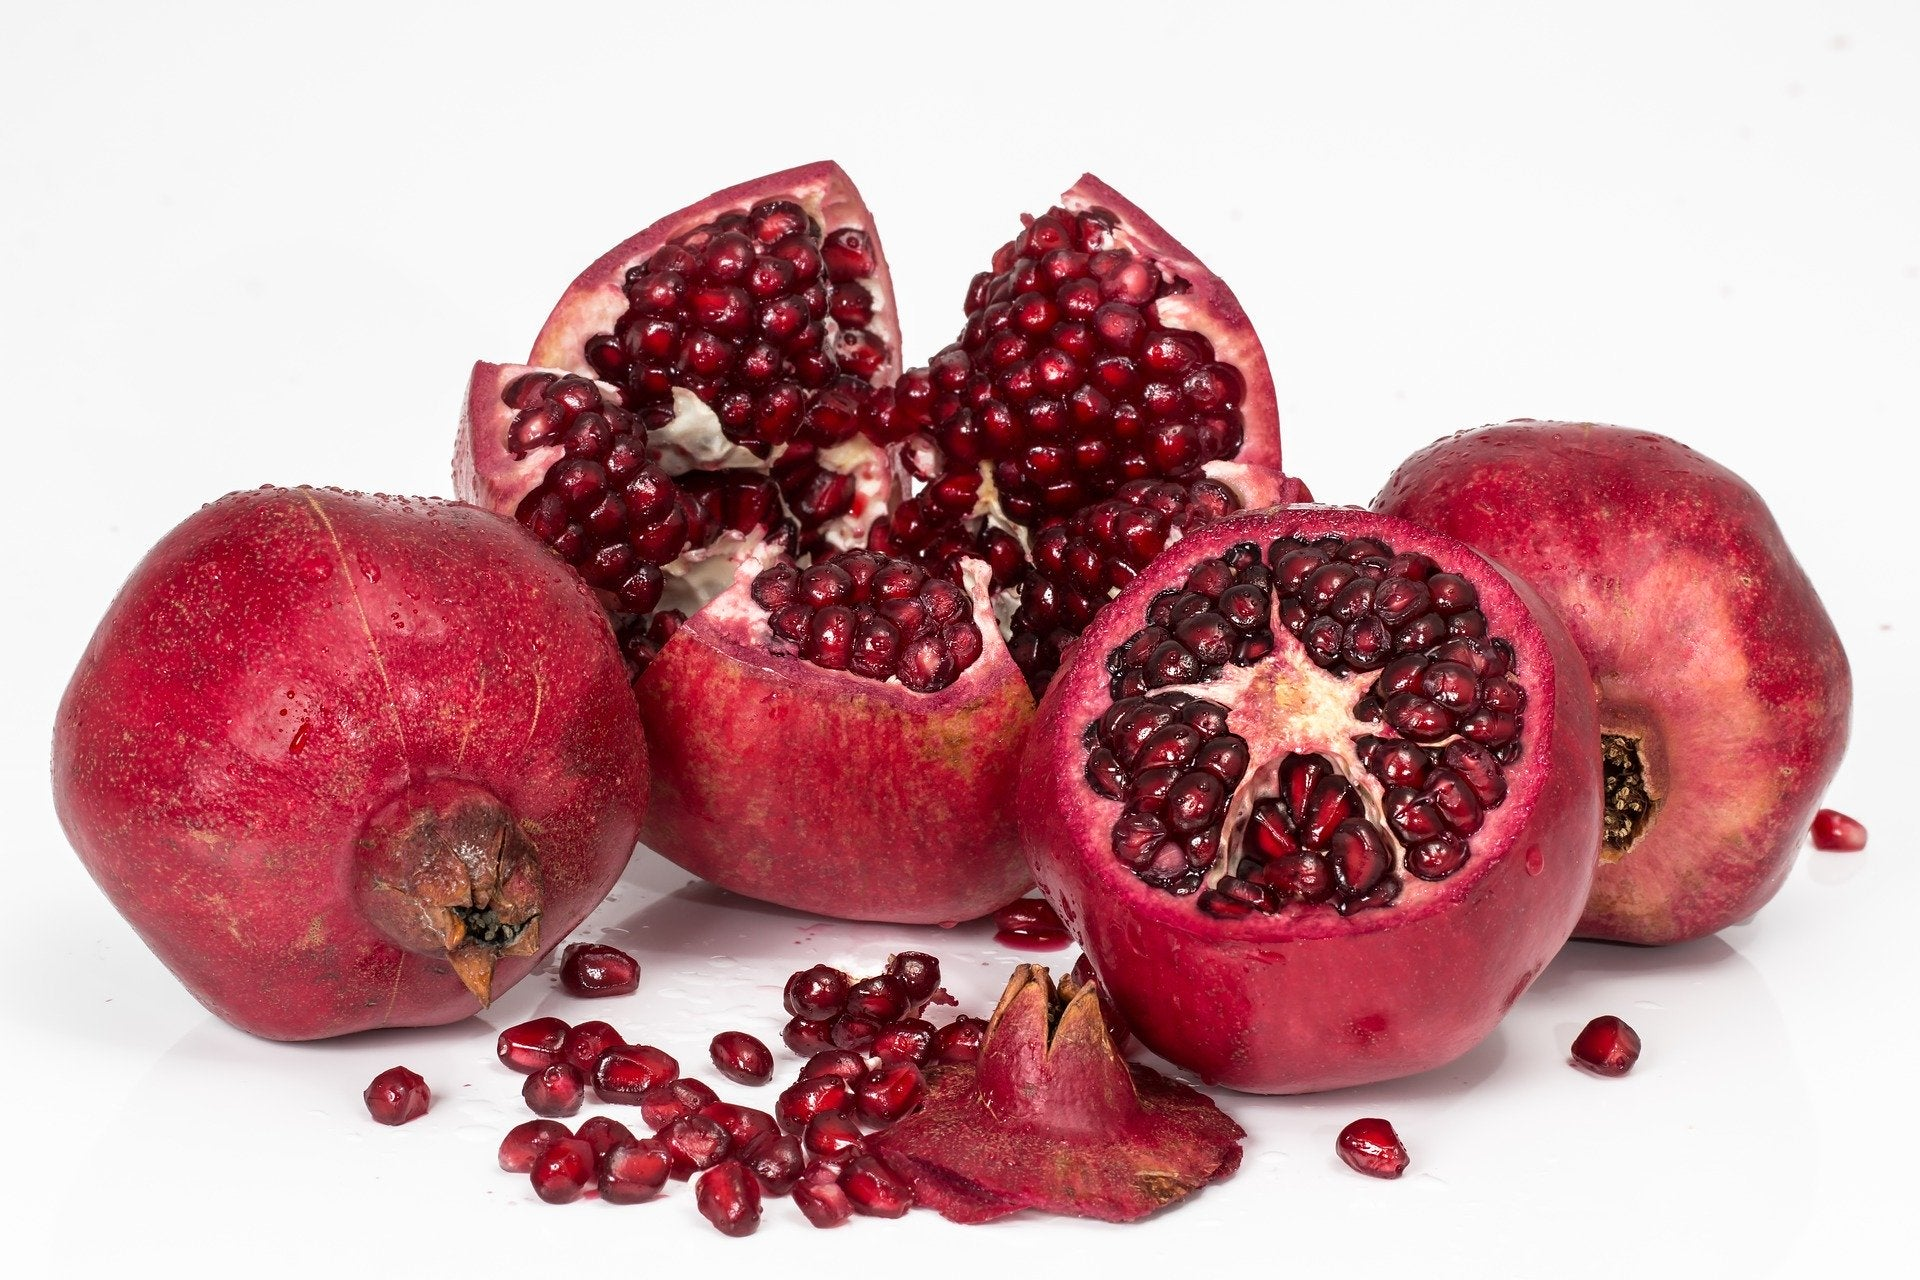 pomegranate-3259161_1920.jpg